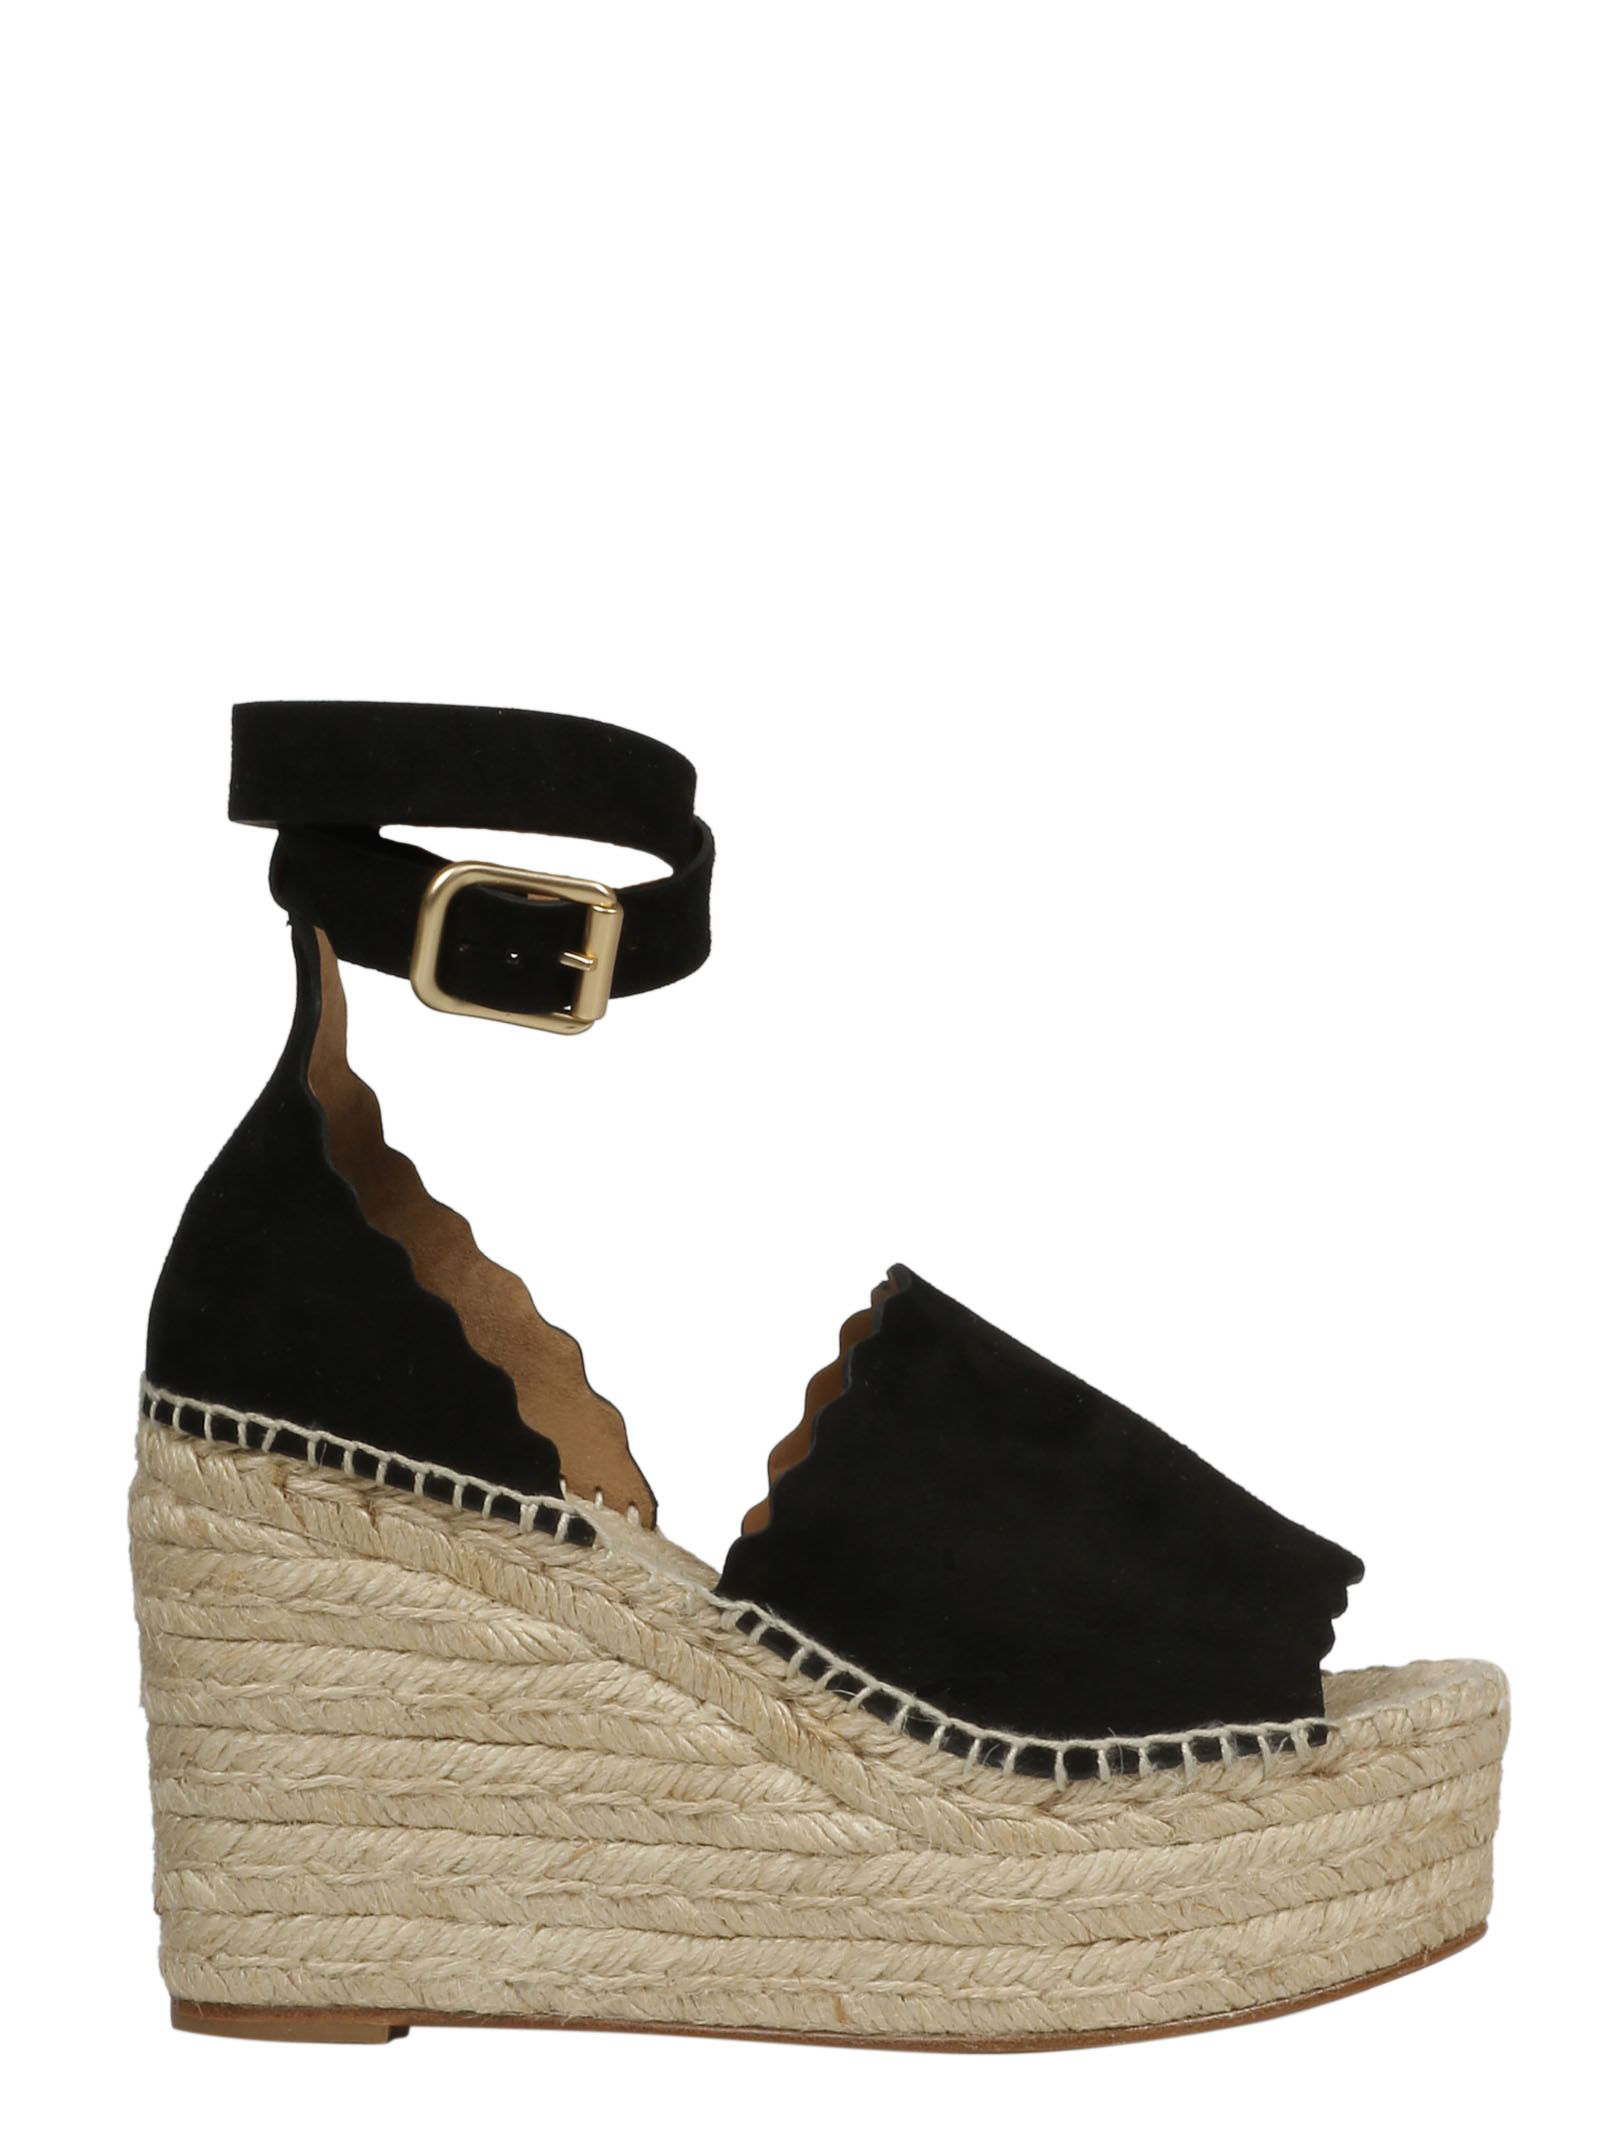 210bf7d6ce1 ChloÉ Lauren Suede Ankle-Strap Espadrille Wedge Sandals In Black ...